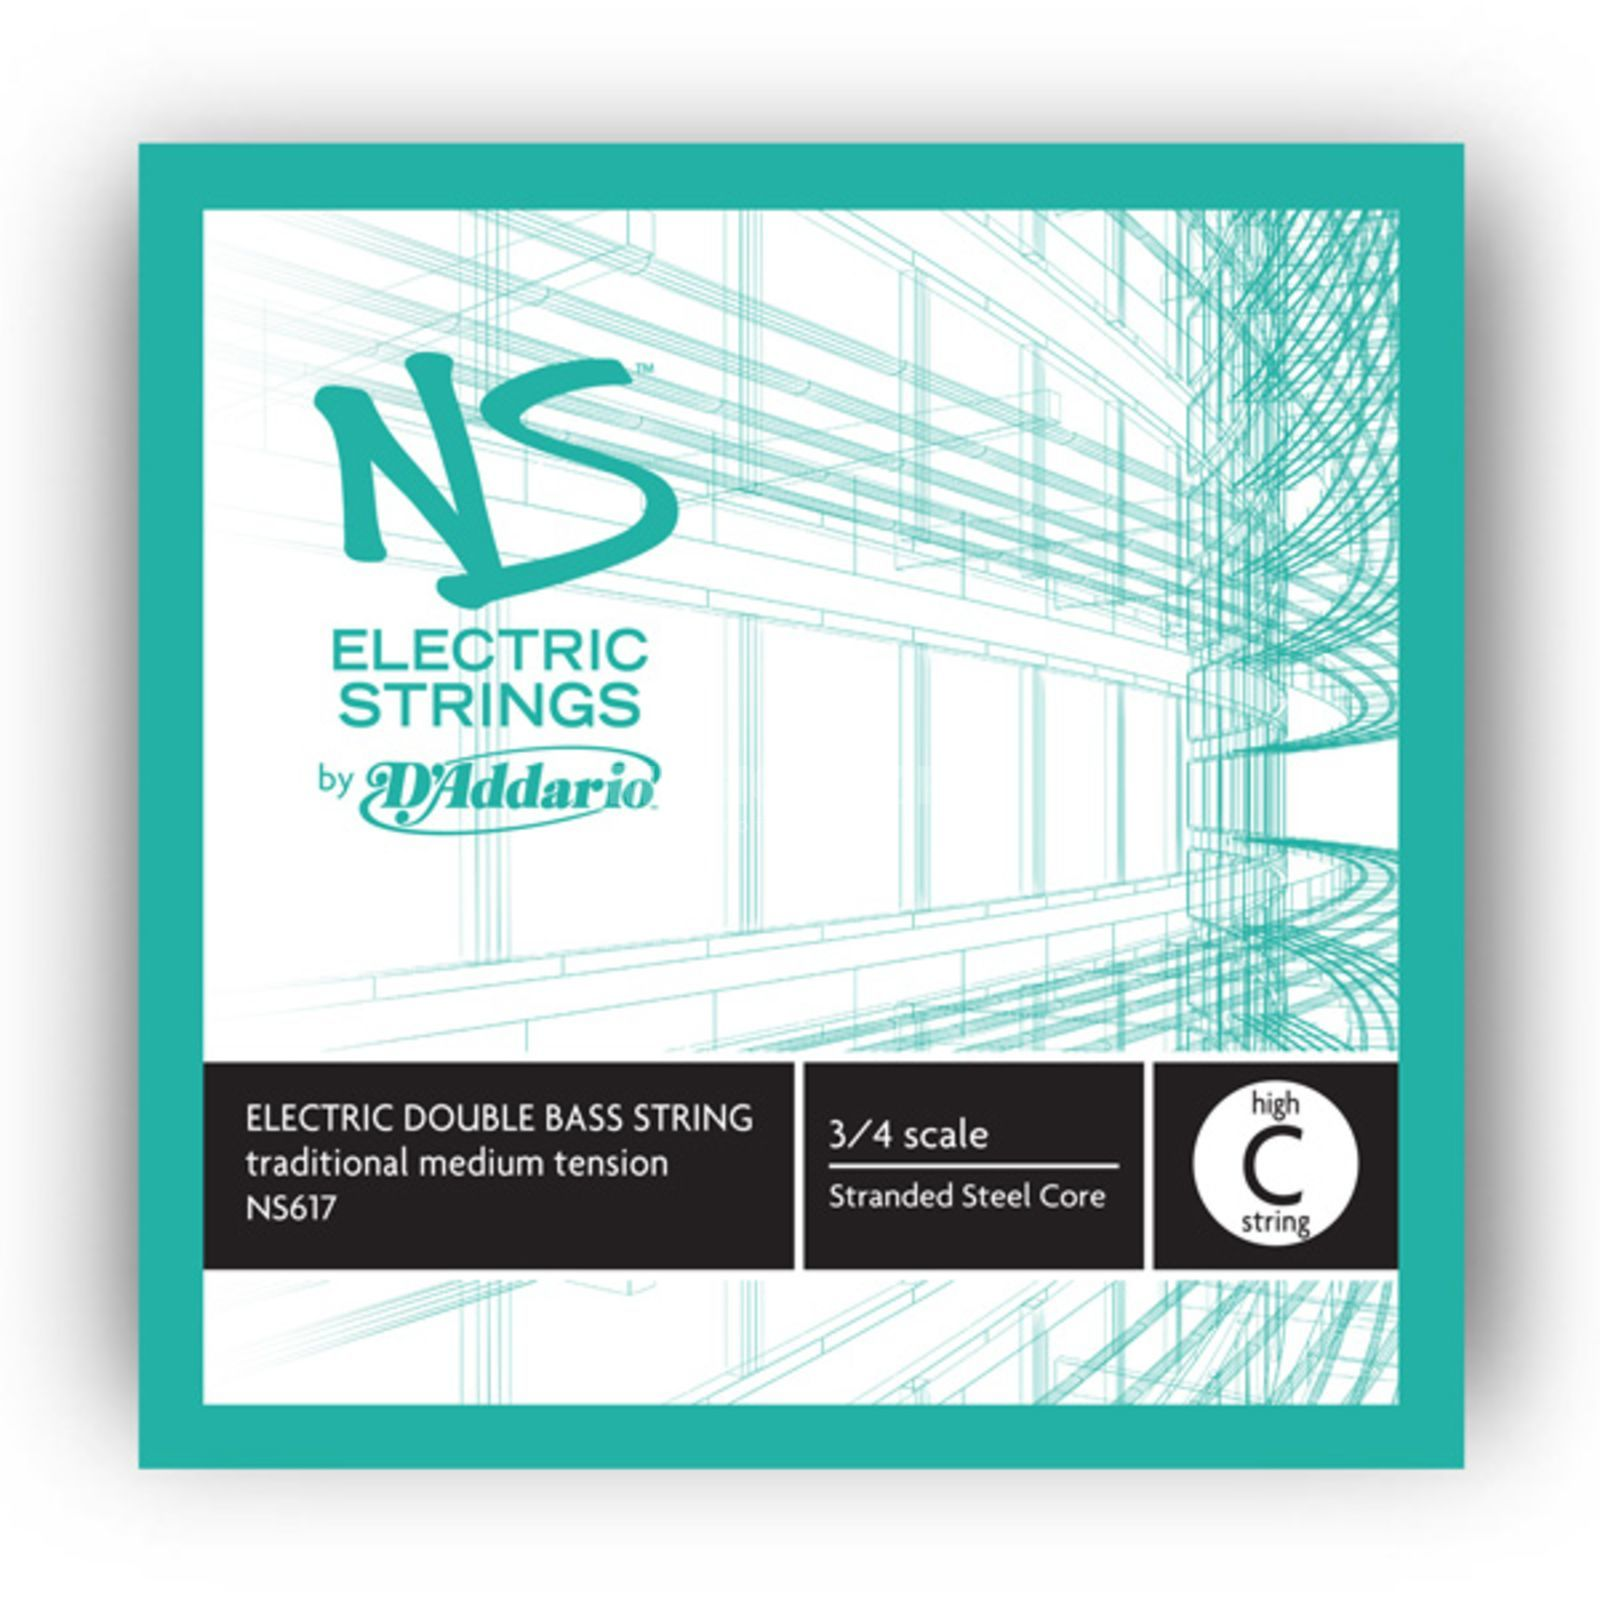 D'Addario NS617 E-Traditional High C Single String Изображение товара